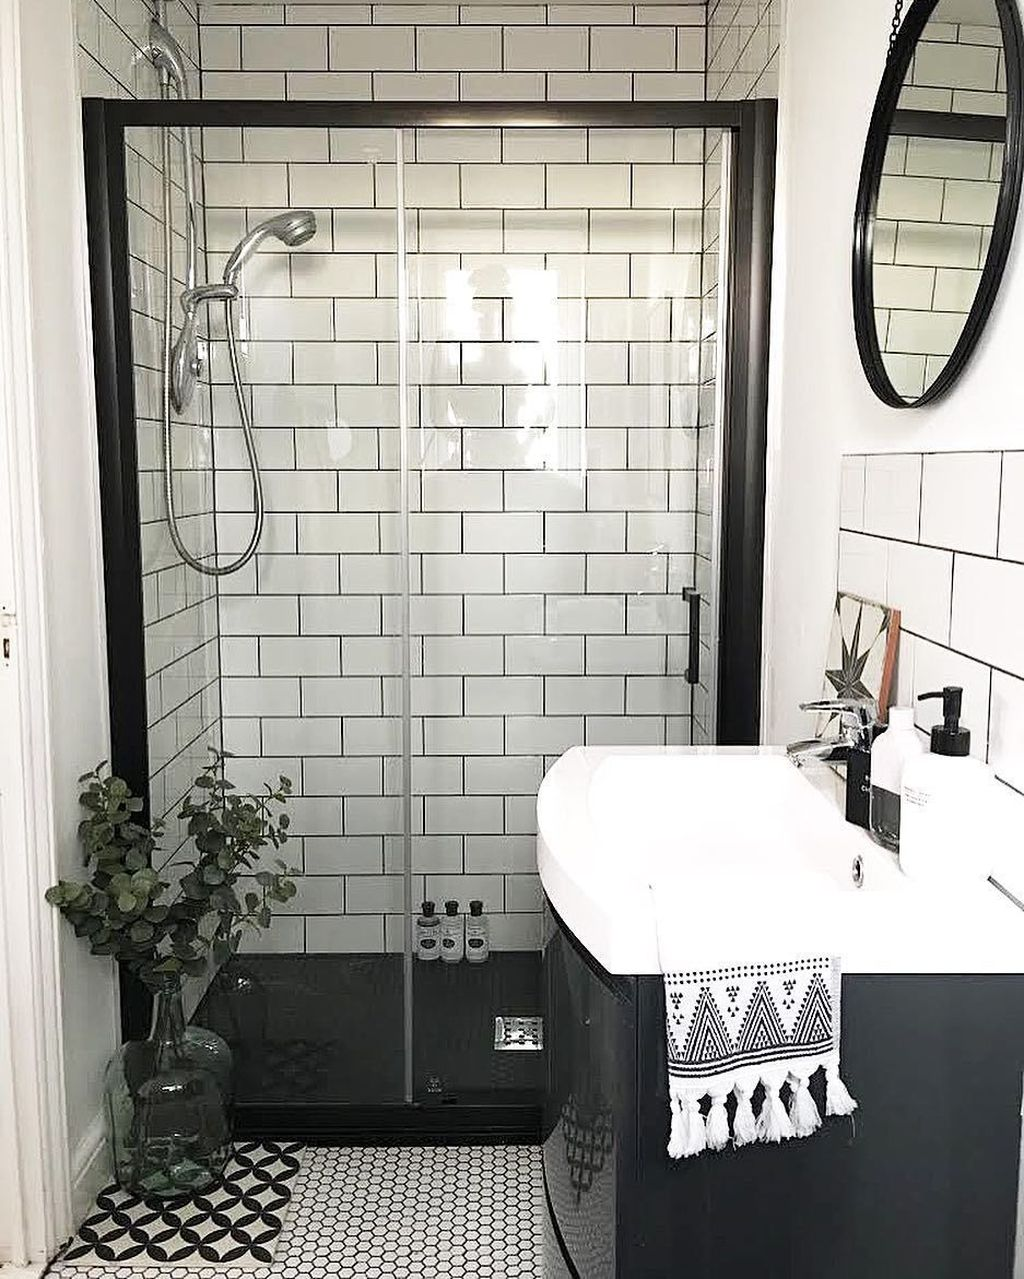 Inspiring Unique Bathroom Ideas That You Should Try 32